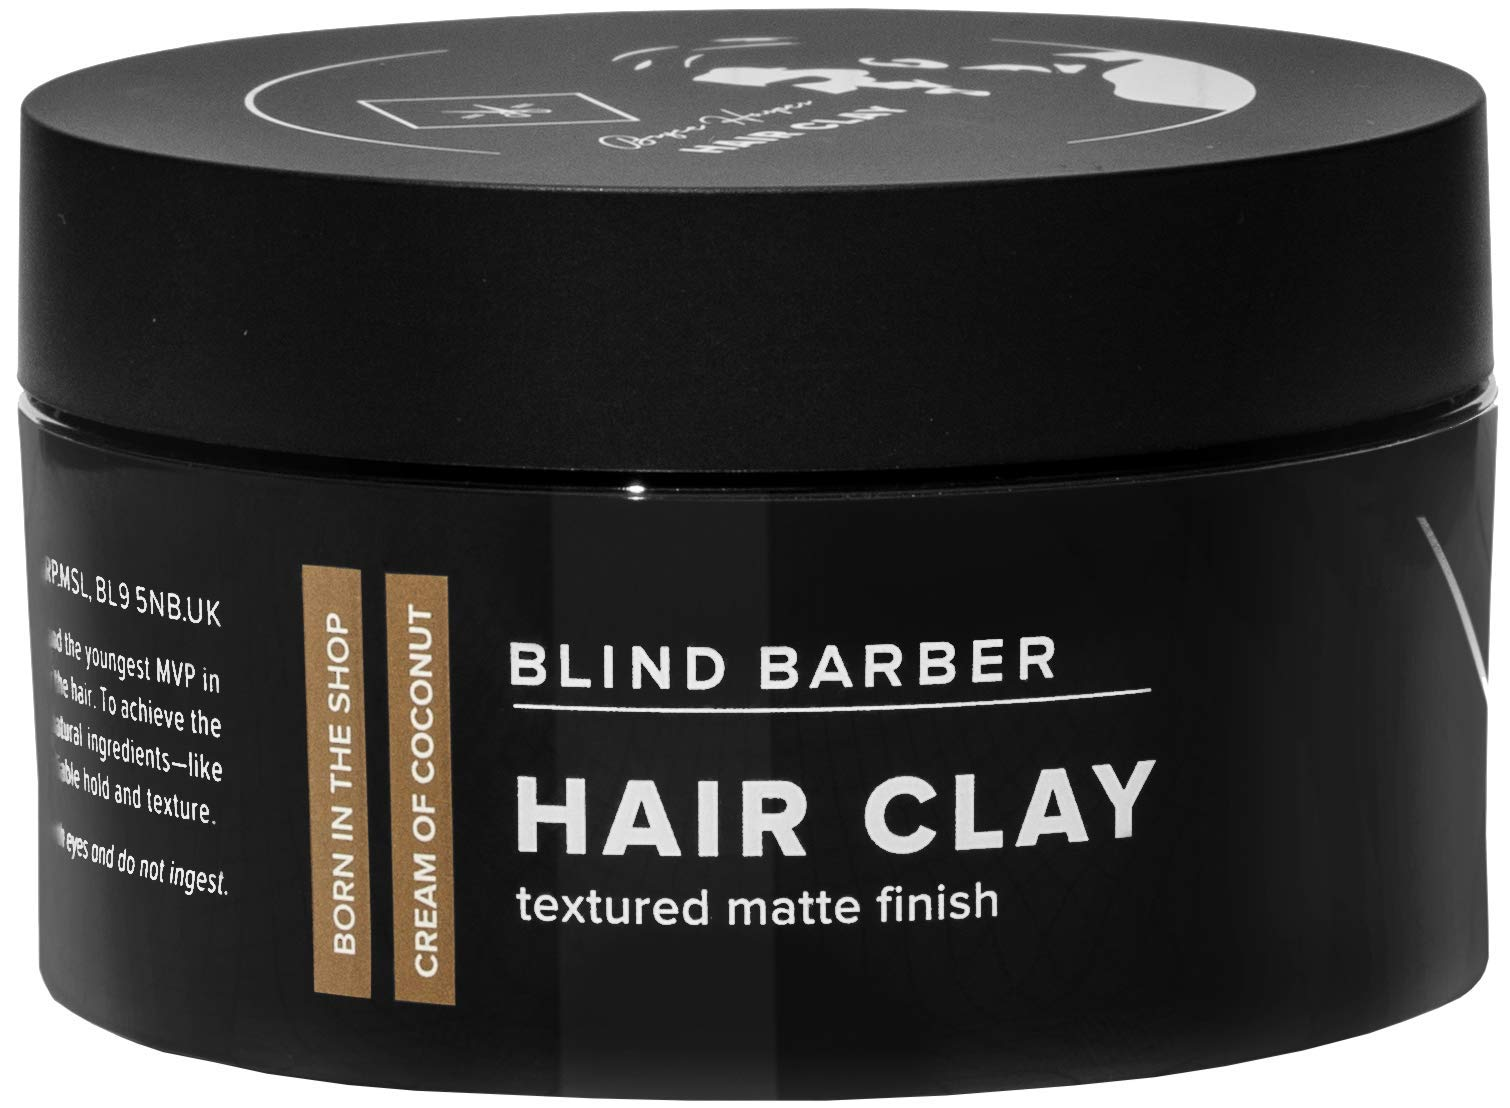 Blind Barber Bryce Harper Hair Clay - Strong Hold Matte Finish Styling Clay for Men, Water Based Kaolin Botanical Formula to Boost Volume & Soak Up Excess Oil (2.5oz / 70g) by Blind Barber